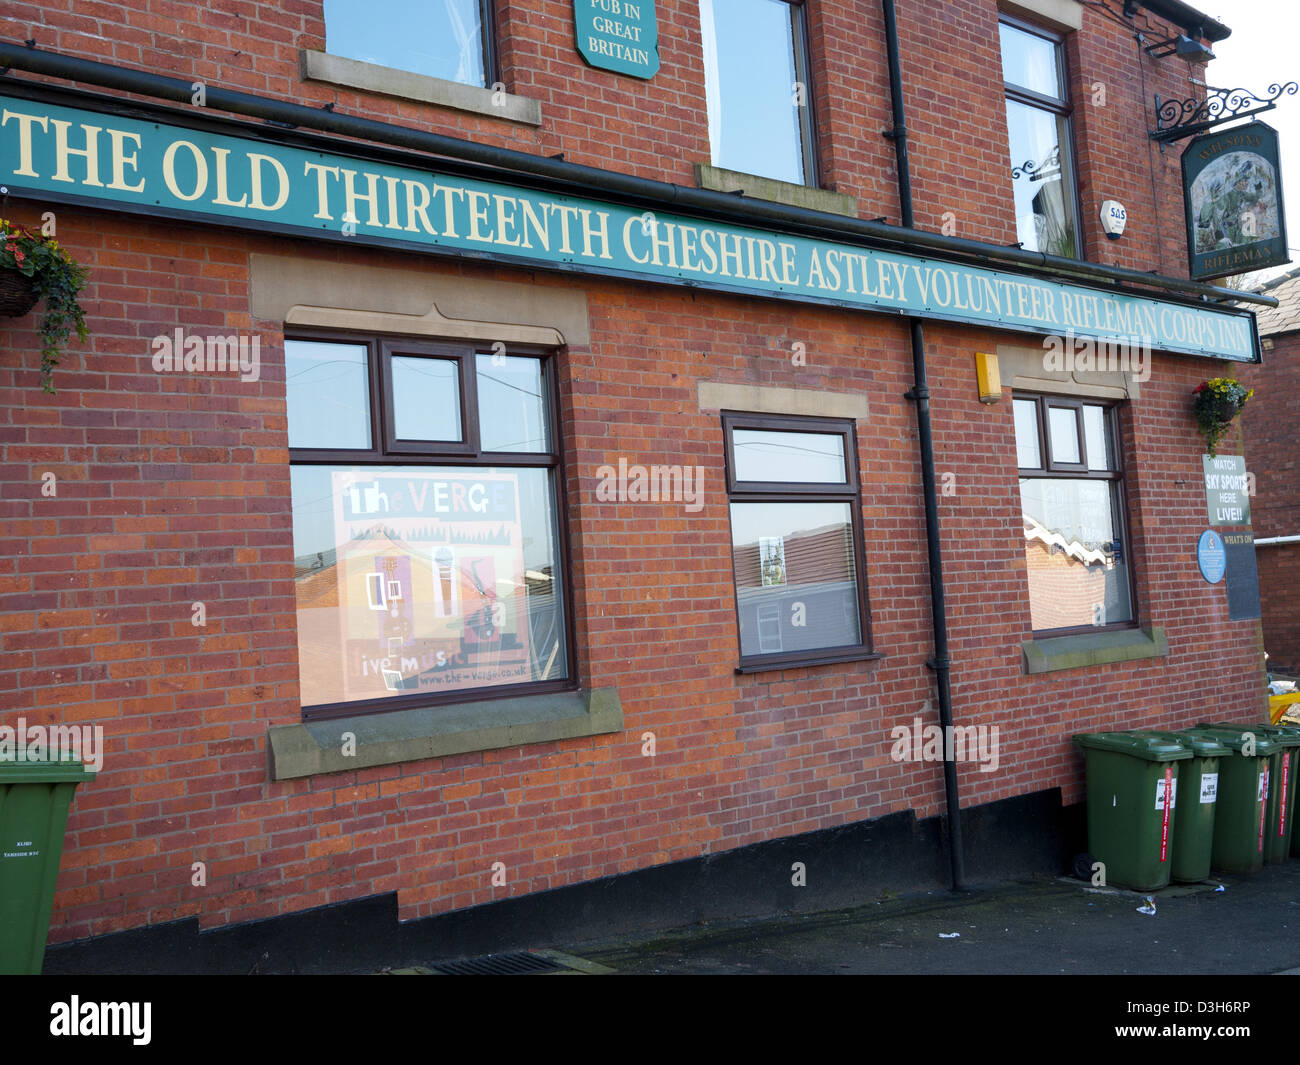 The Old Thirteenth Cheshire Astley Volunteer Rifleman Corps Inn, The longest named pub in the UK. Stalybridge, Tameside, Stock Photo